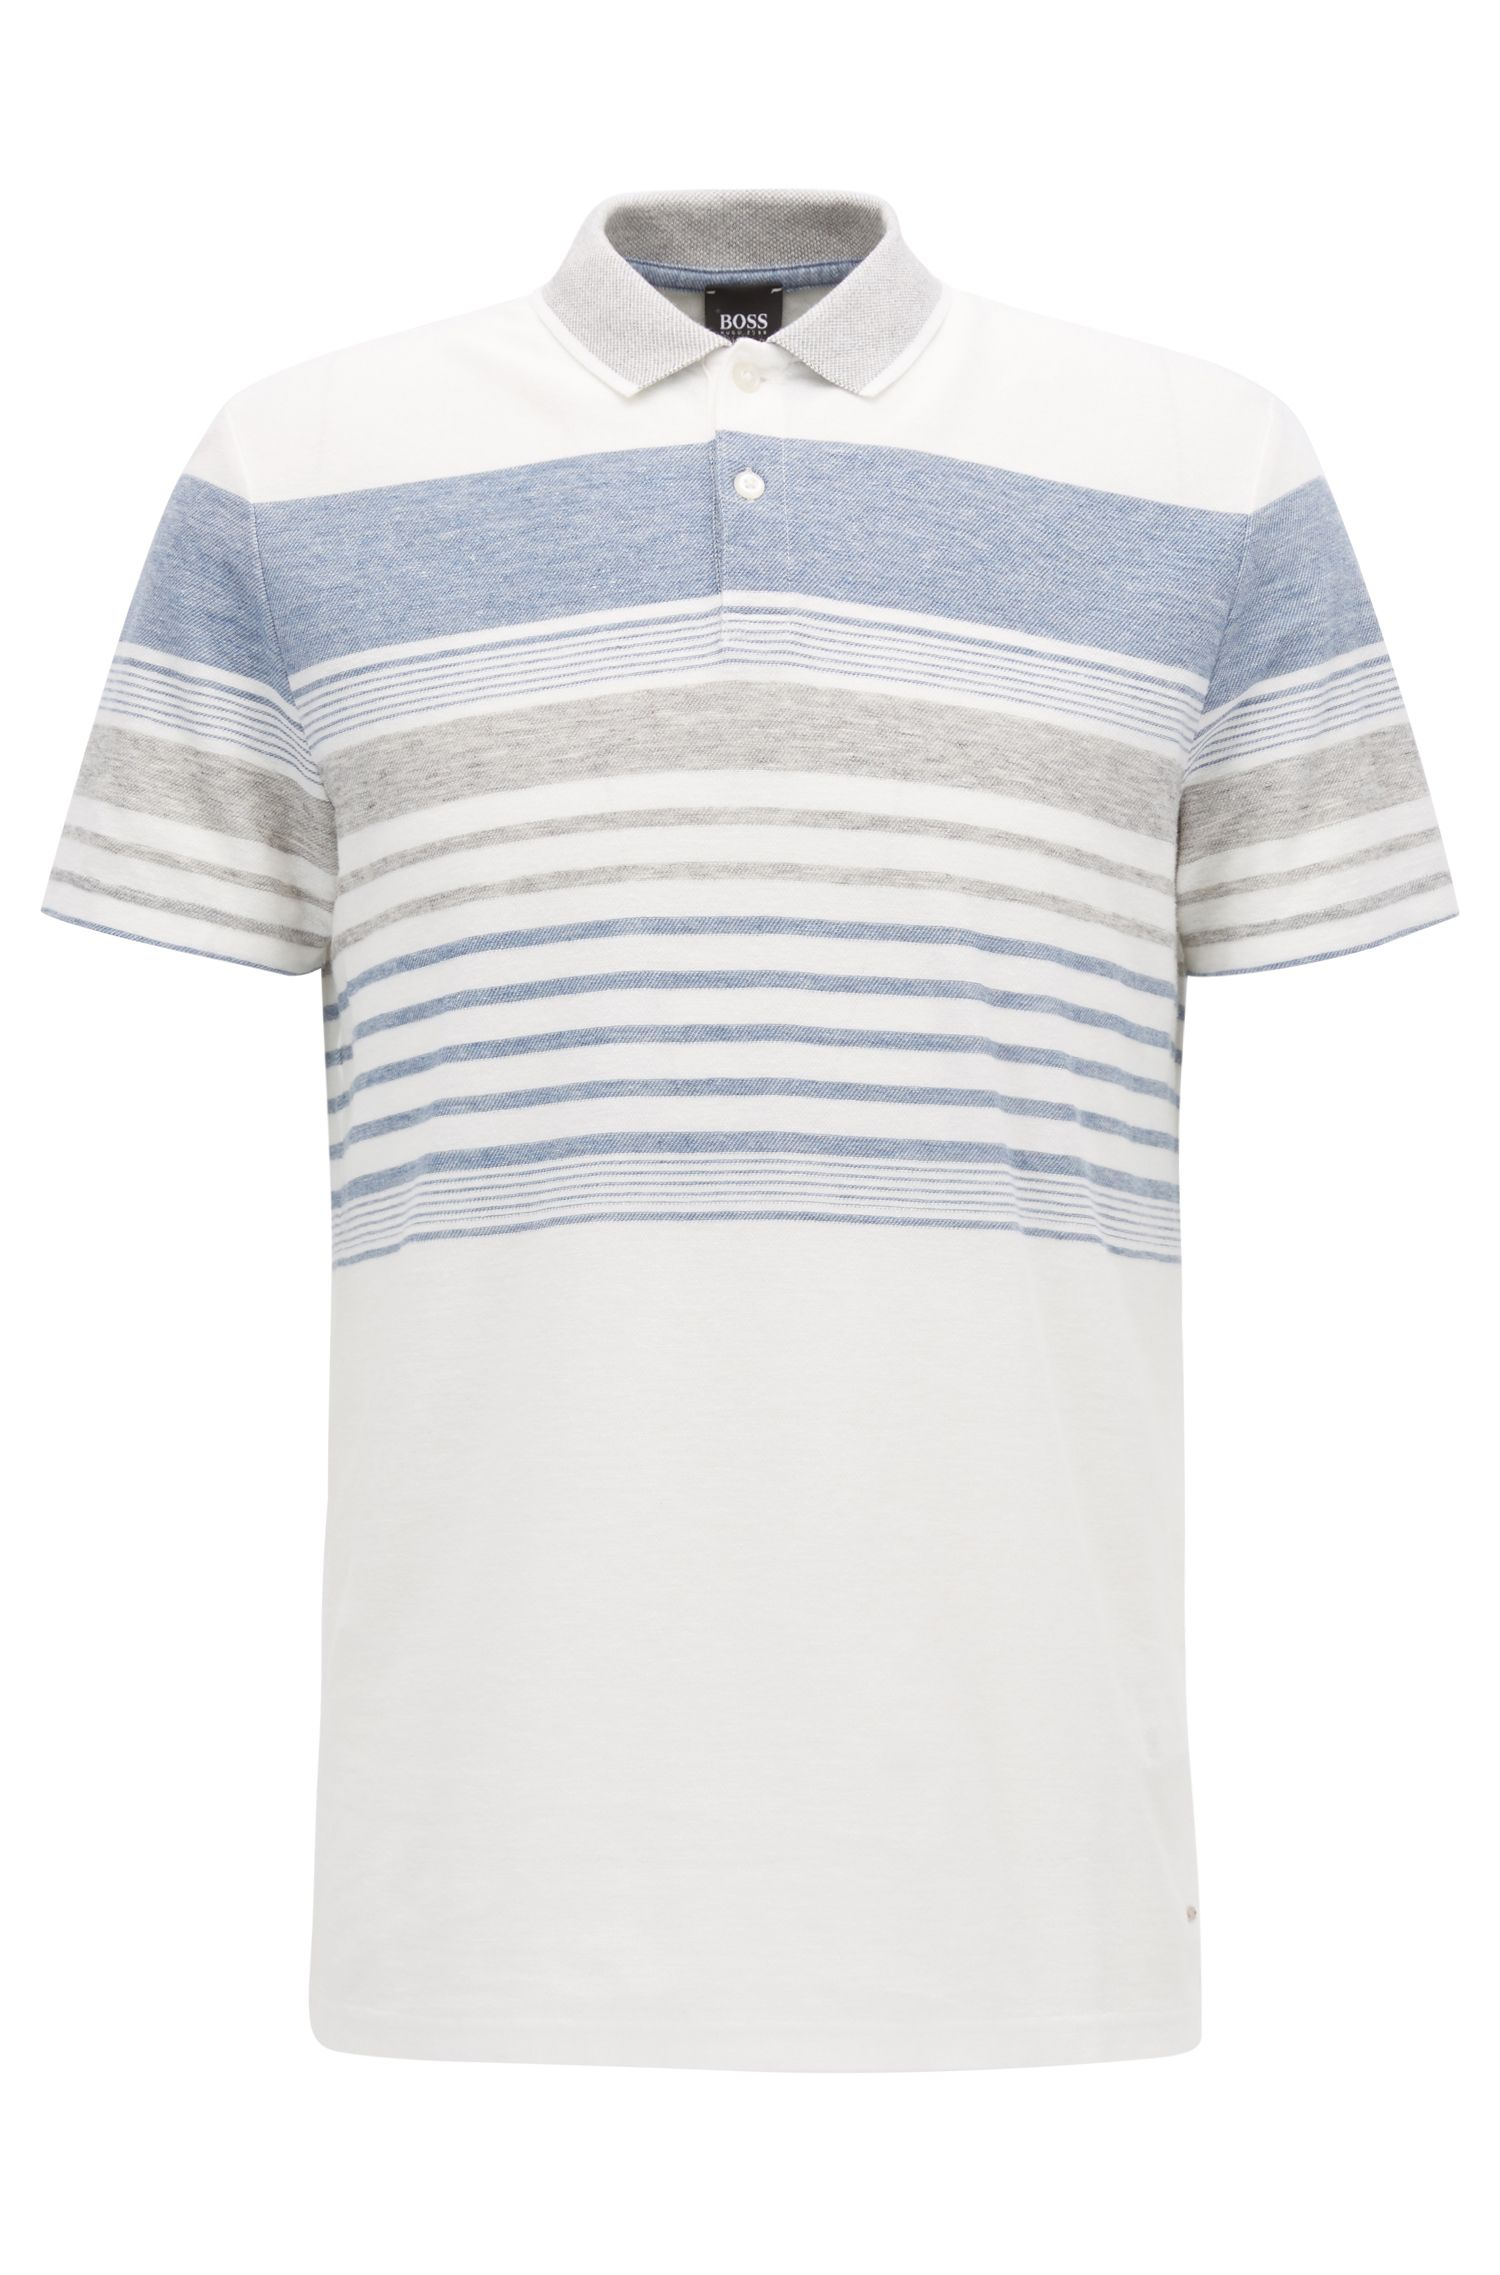 Relaxed-fit melange-striped polo shirt in a cotton-blend jacquard